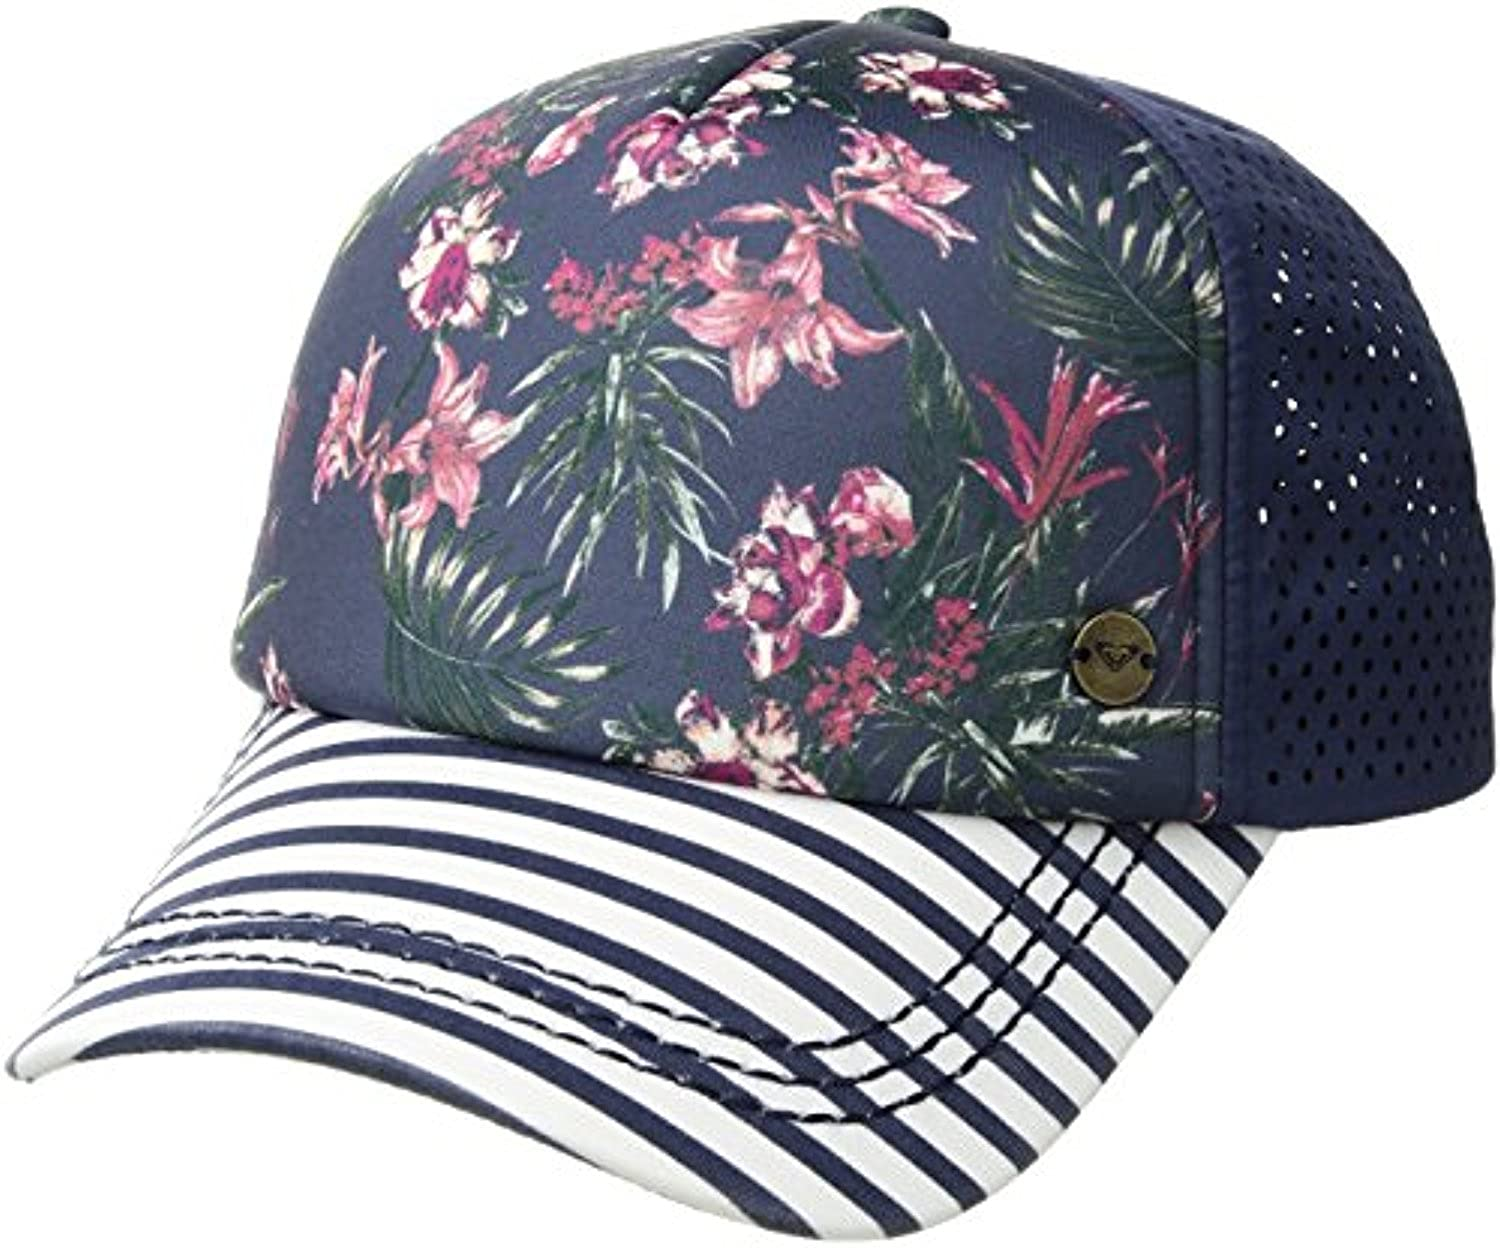 e3072902b589c Roxy Women s Waves Machines Trucker Hat Crown Blue Flower Games 1SZ    Sunlotion at Amazon Women s Clothing store